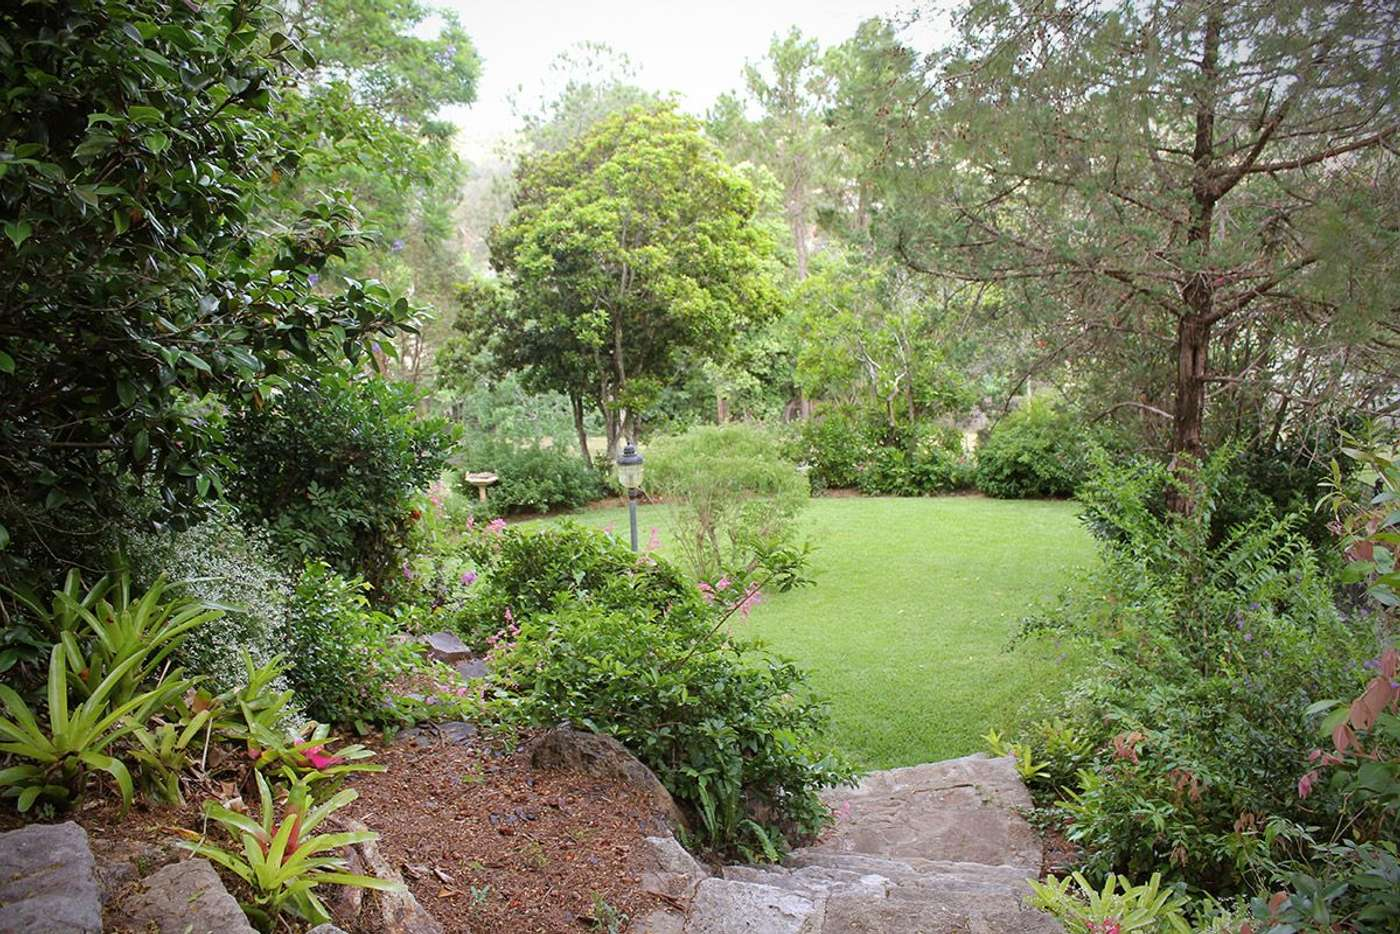 Main view of Homely house listing, 54 Kunde Street, Cornubia QLD 4130